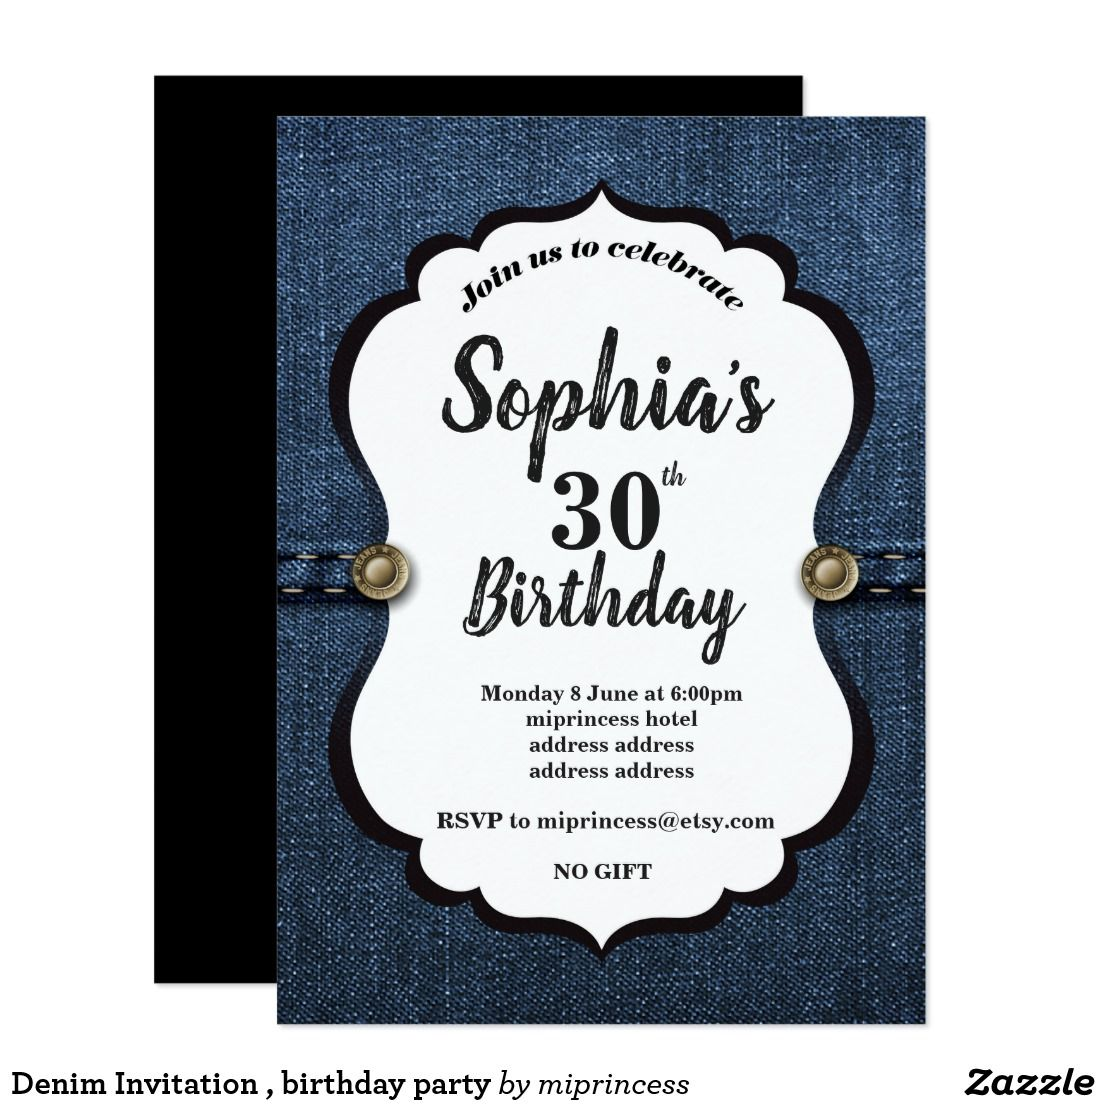 Denim invitation birthday party denim invitation birthday party fun birthday party invites customize your invitations birthdayparty stopboris Choice Image